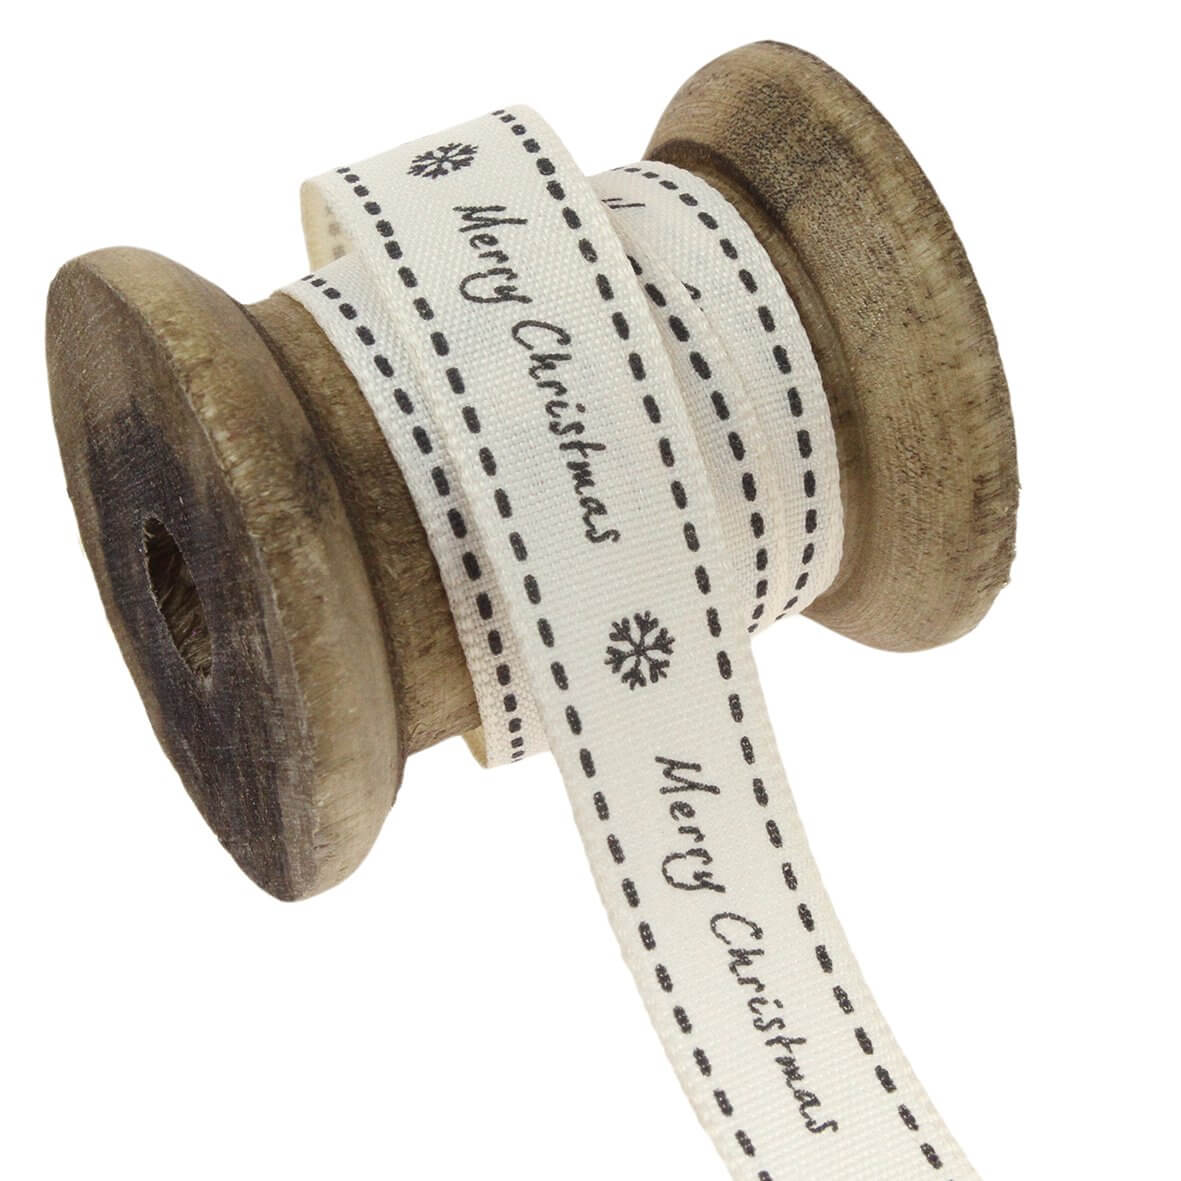 15mm Merry Christmas (Natural/Charcoal) Colour 2 - Display Reel